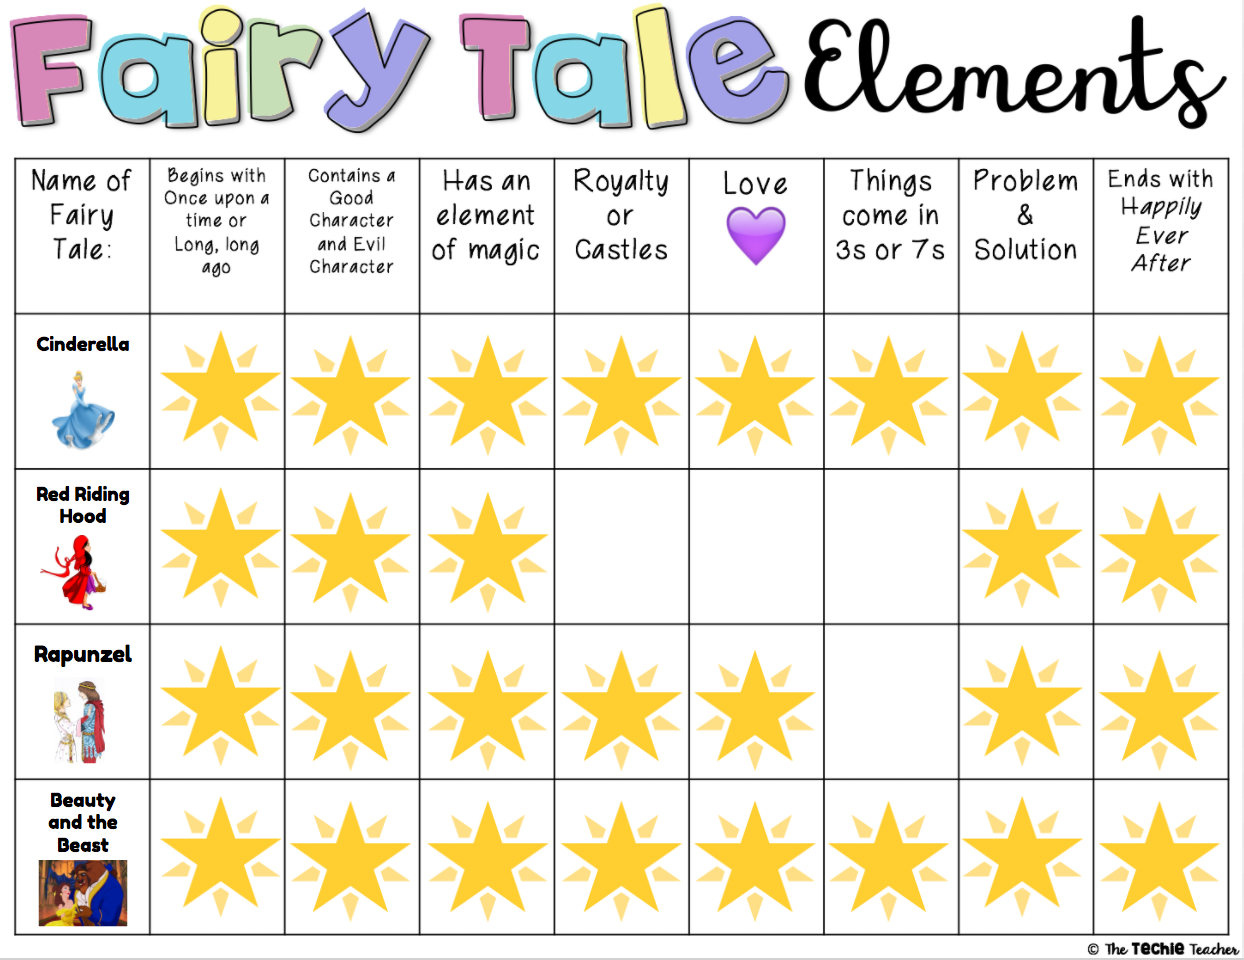 Incorporating Fairy Tale Elements With Technology In The